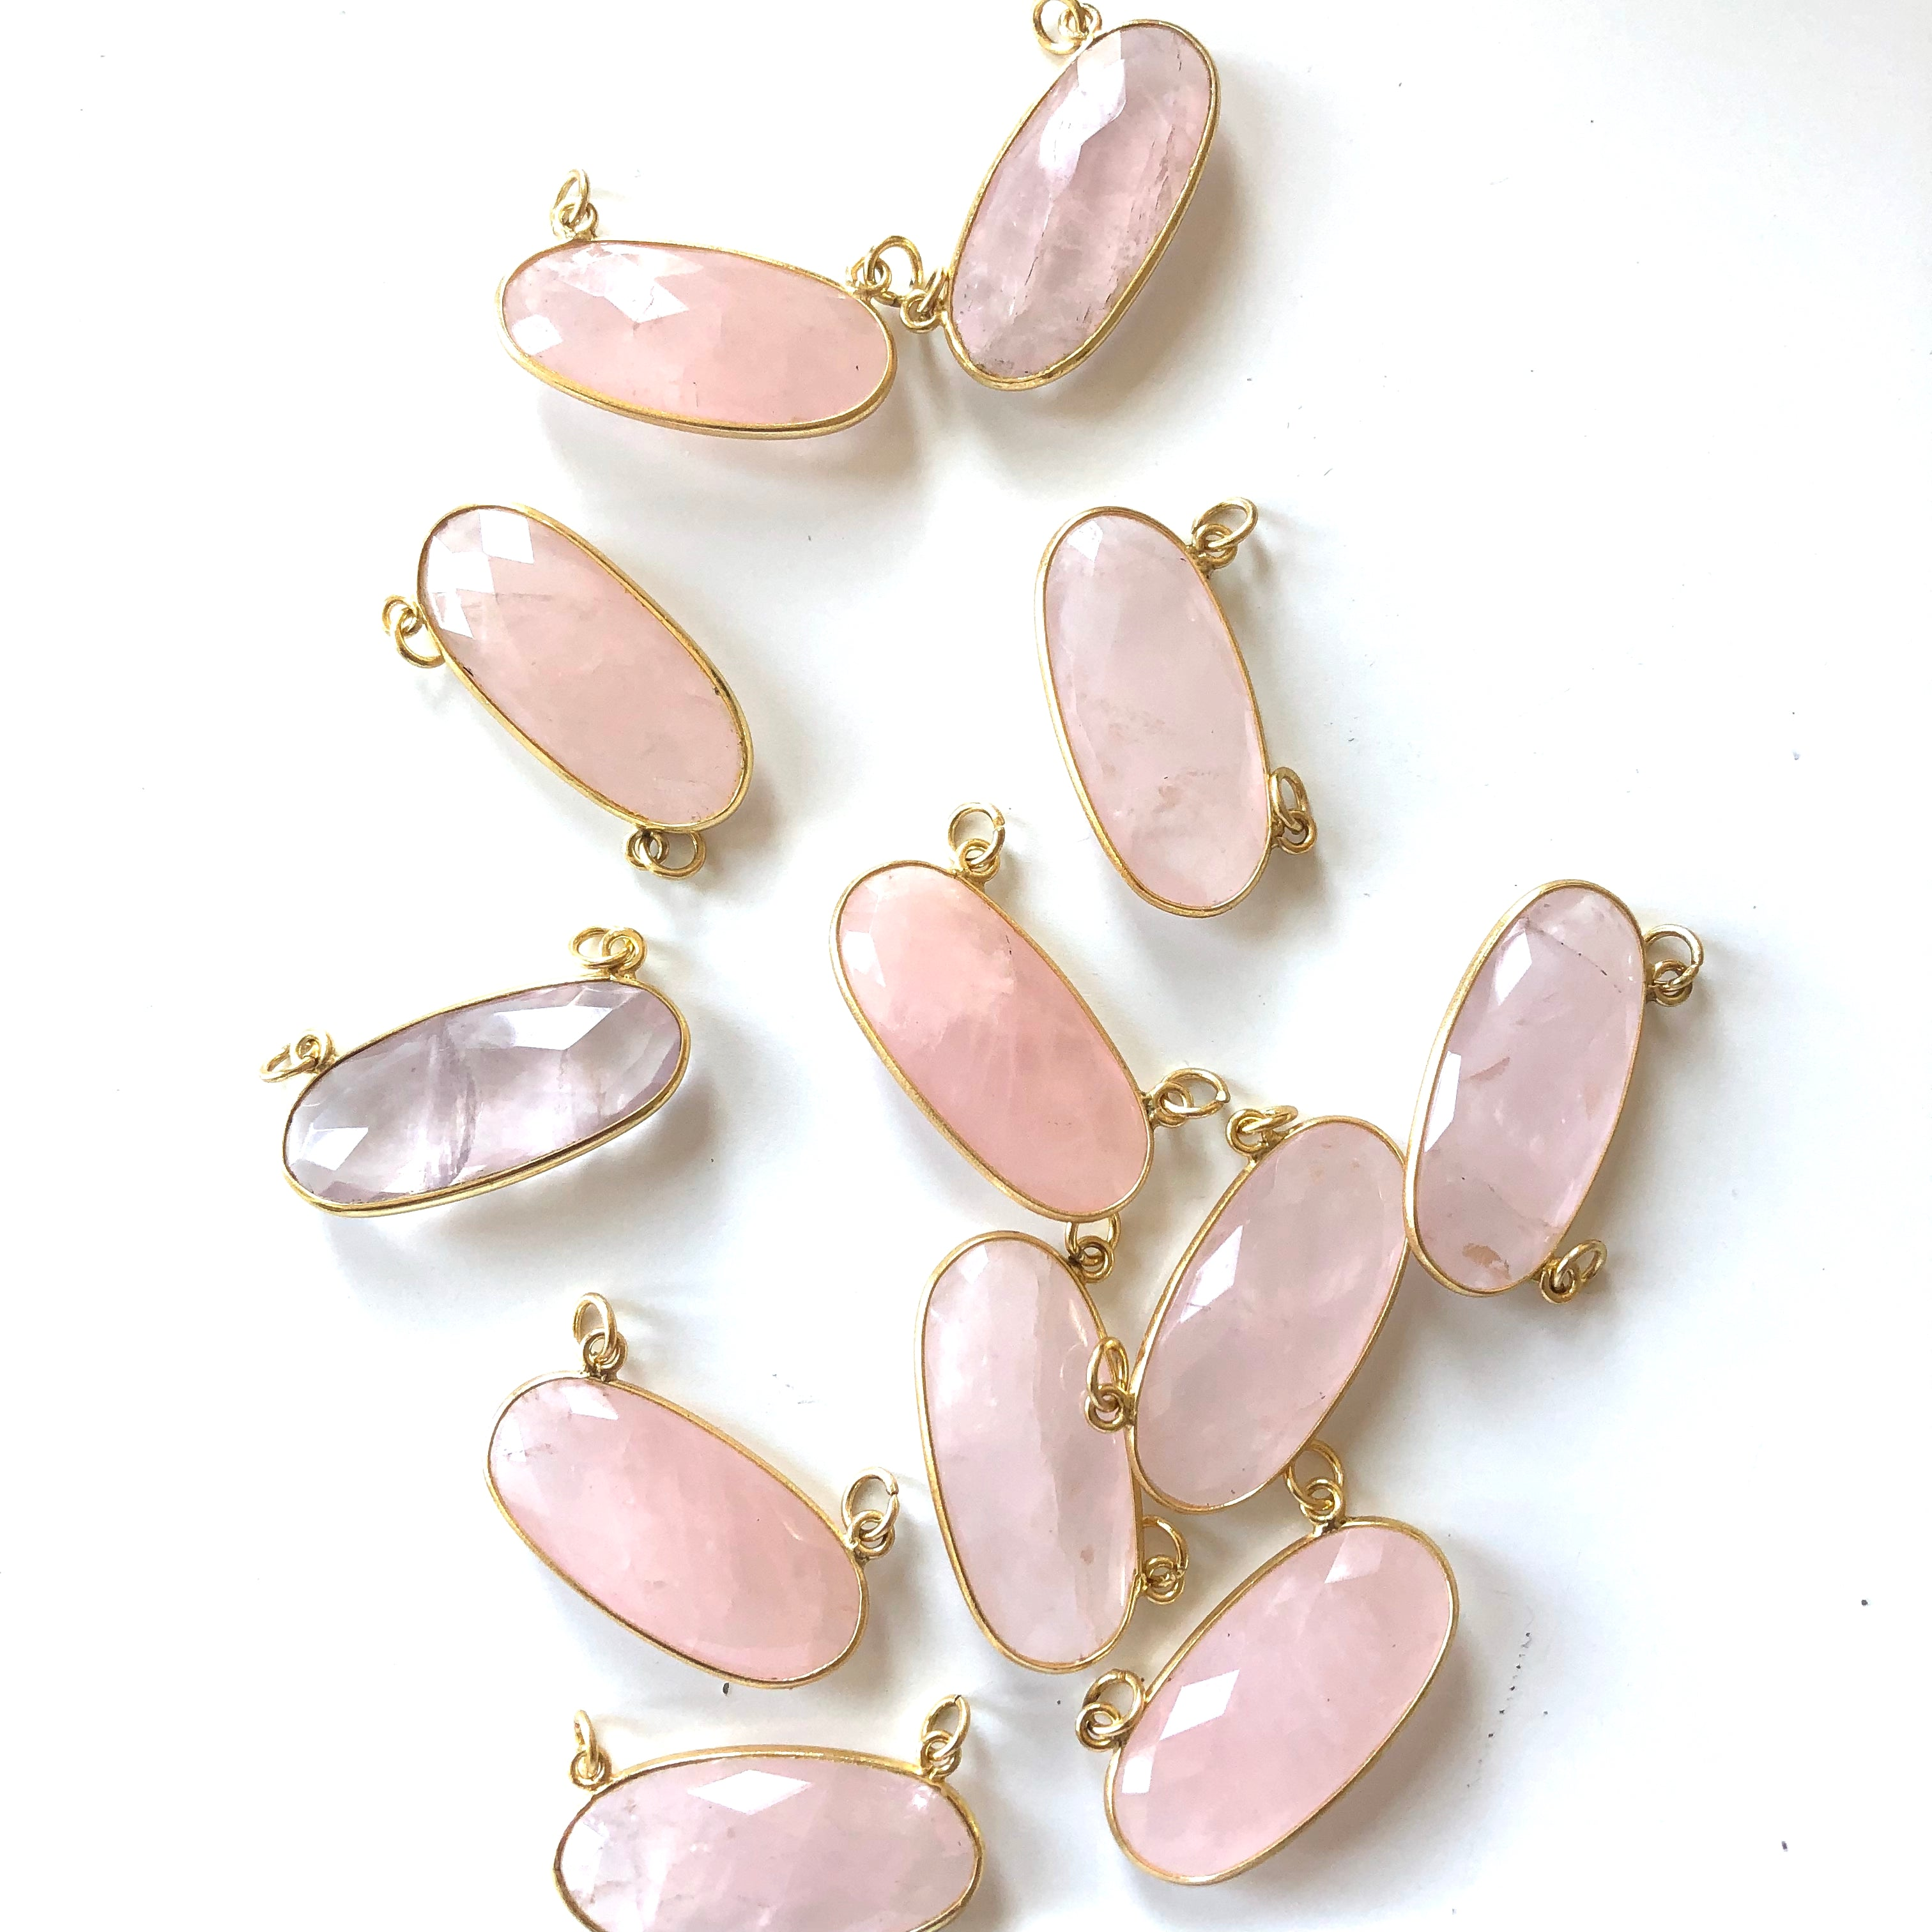 6 Pieces - Gold Plated over Silver Bezel Pendants Rose Quartz Oval